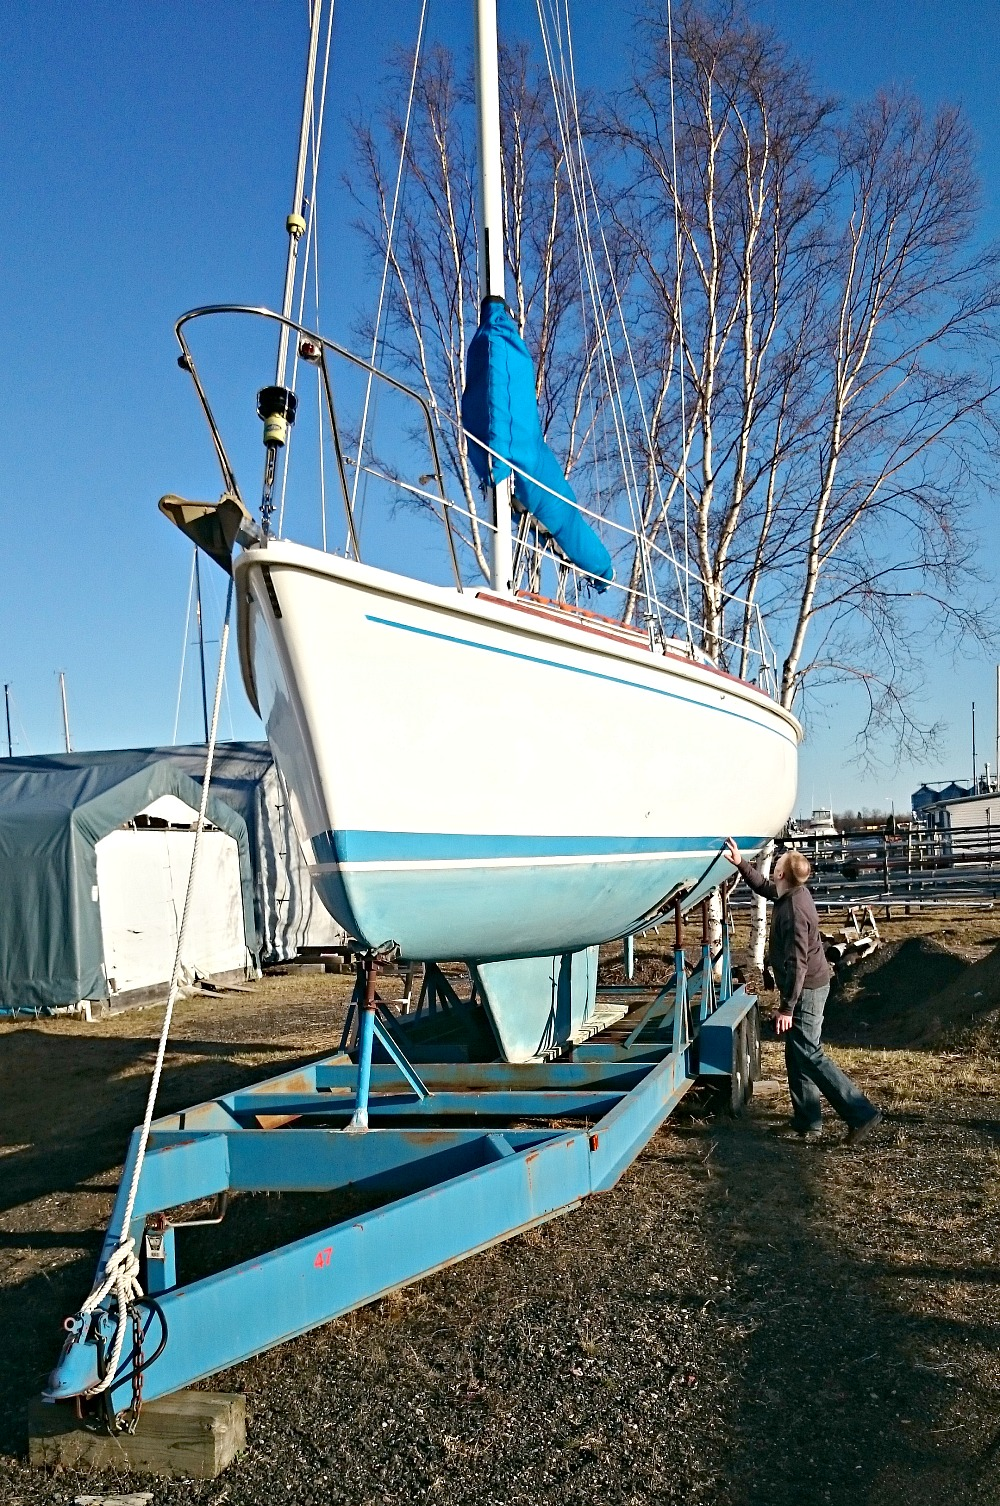 Inspecting an Allmand 30 Sailboat | @danslelakehouse